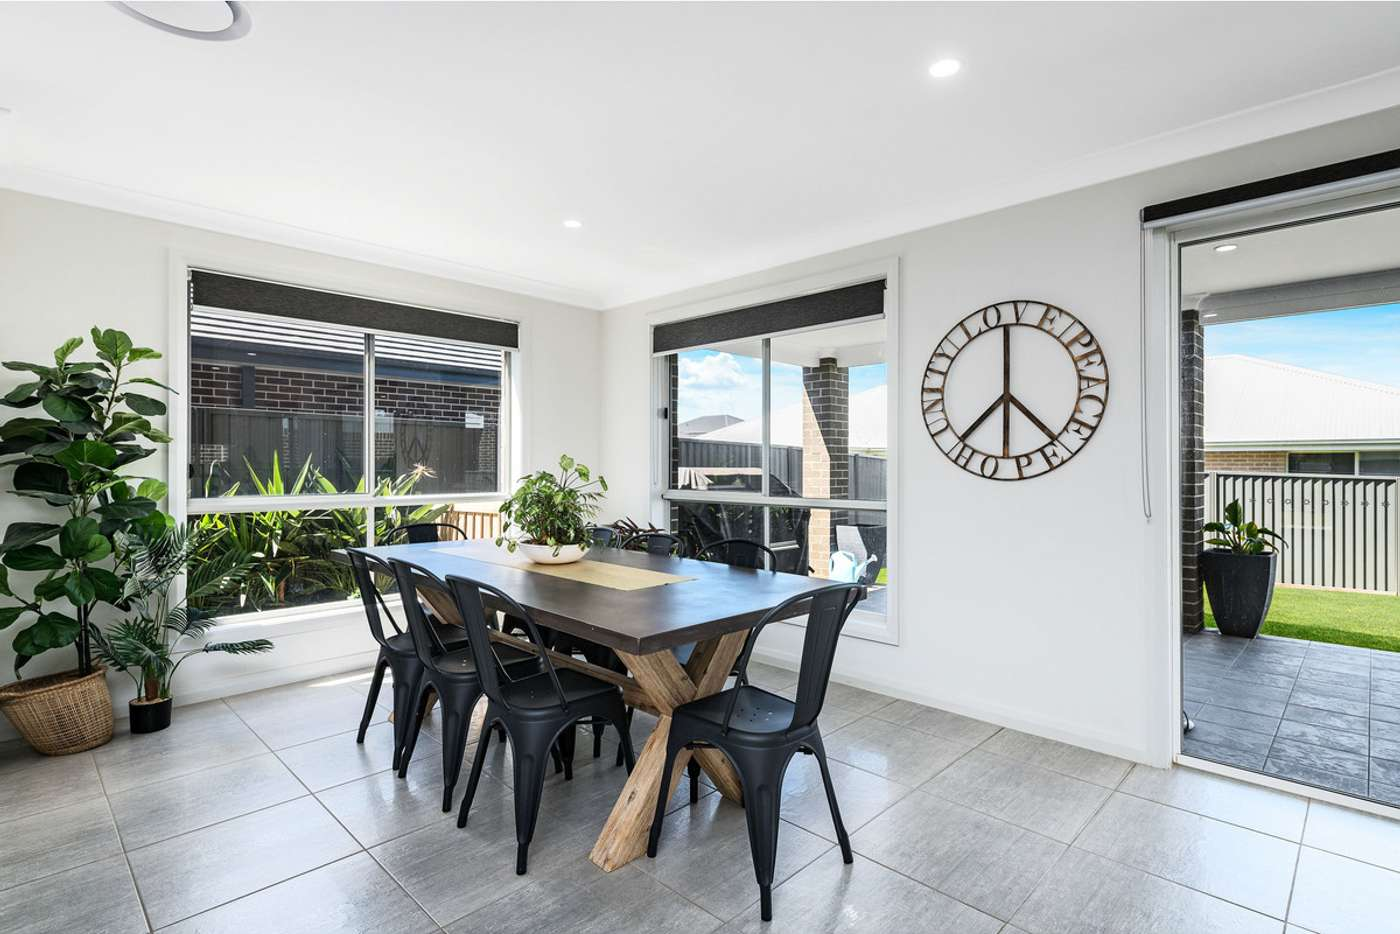 Fifth view of Homely house listing, 38 Wainwright Drive, Cobbitty NSW 2570